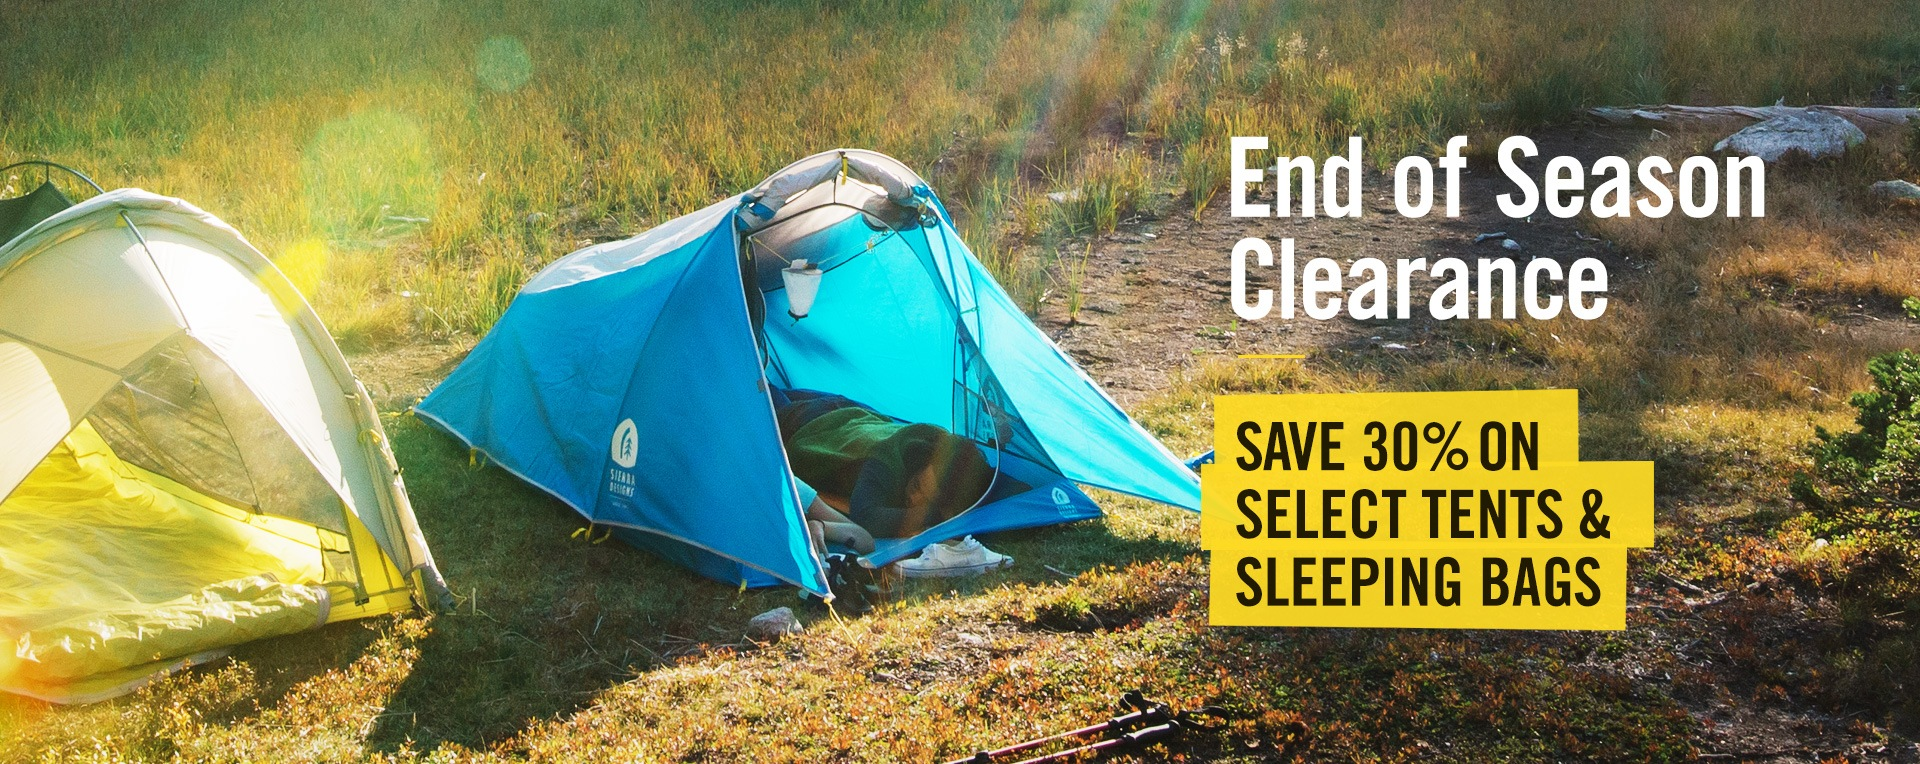 Save 30% on Select Tents & Sleeping Bags